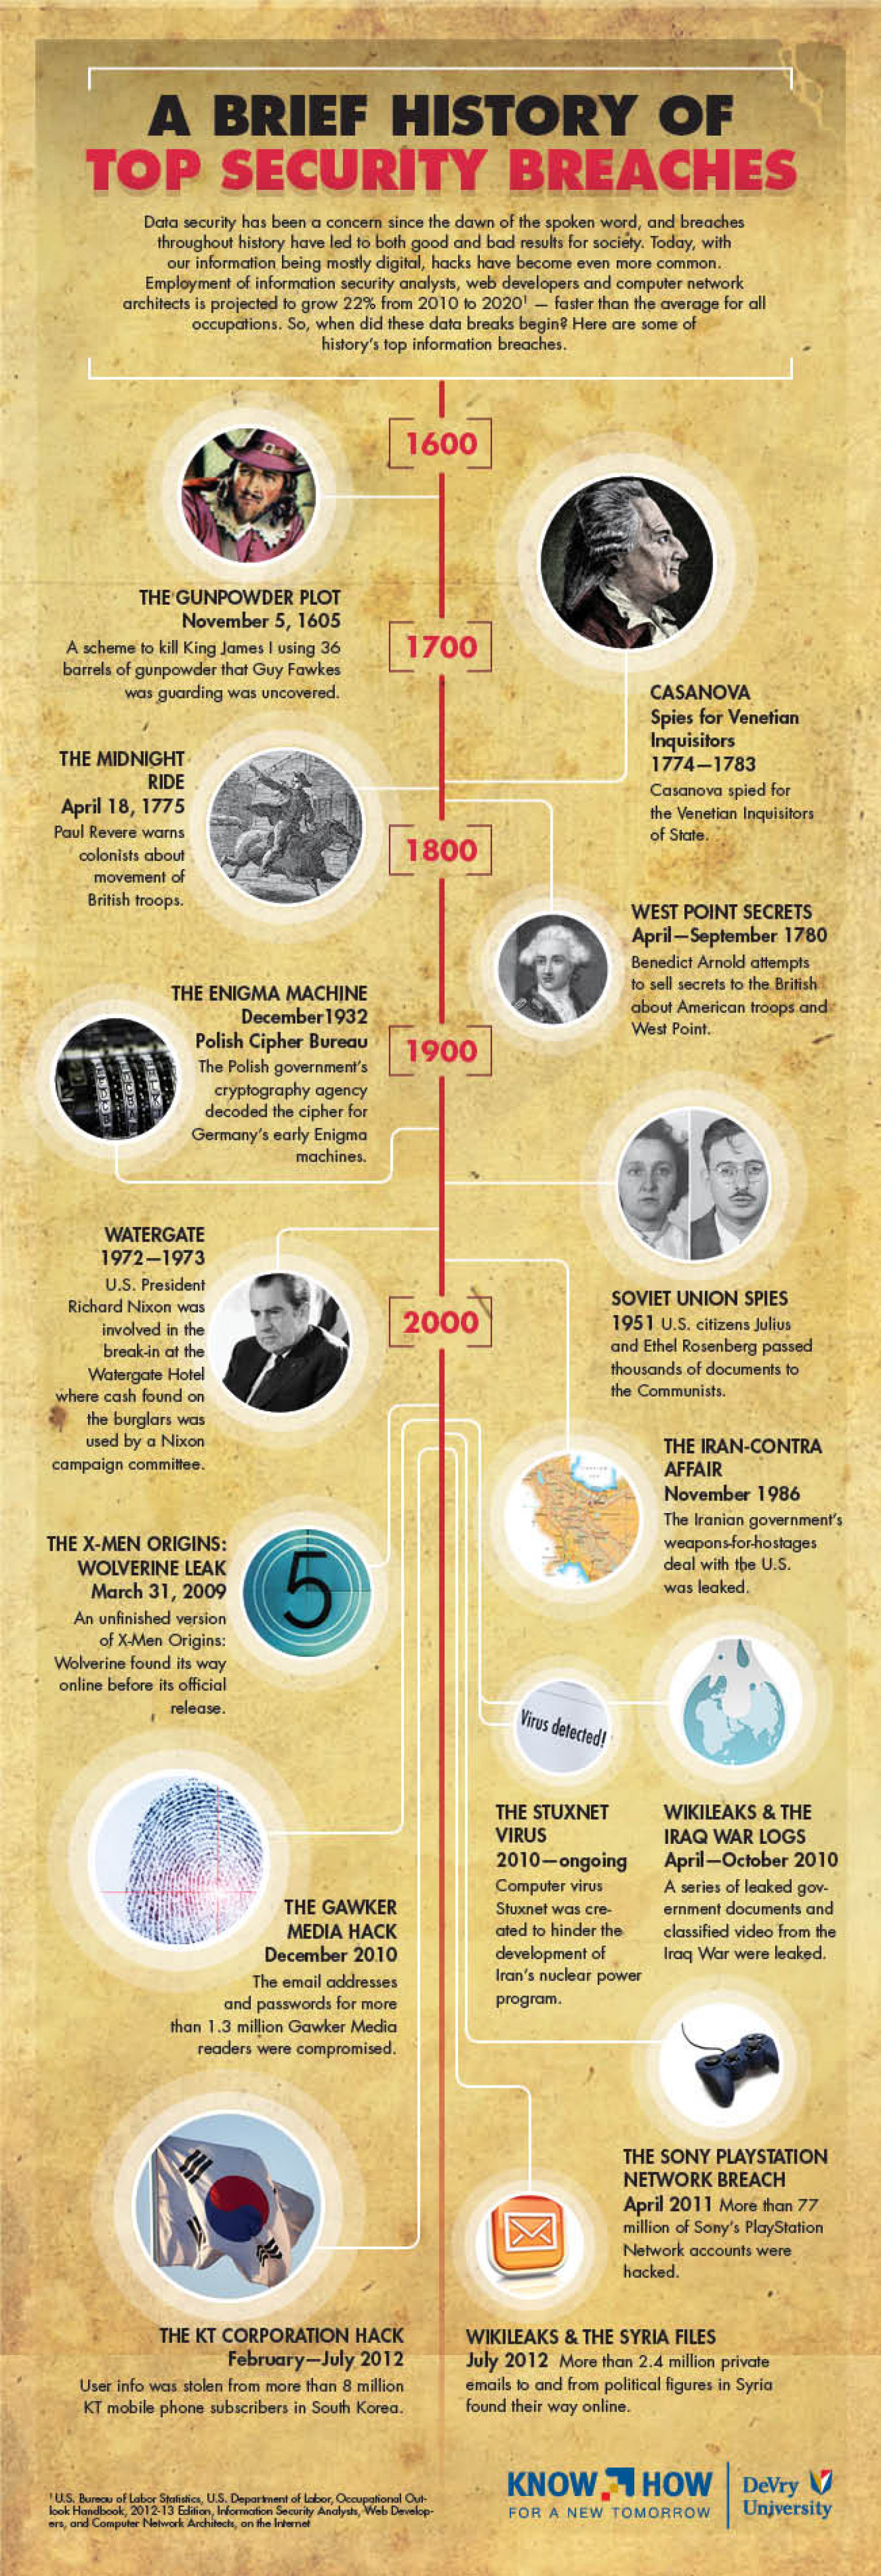 A Brief History of Top Security Breaches Infographic